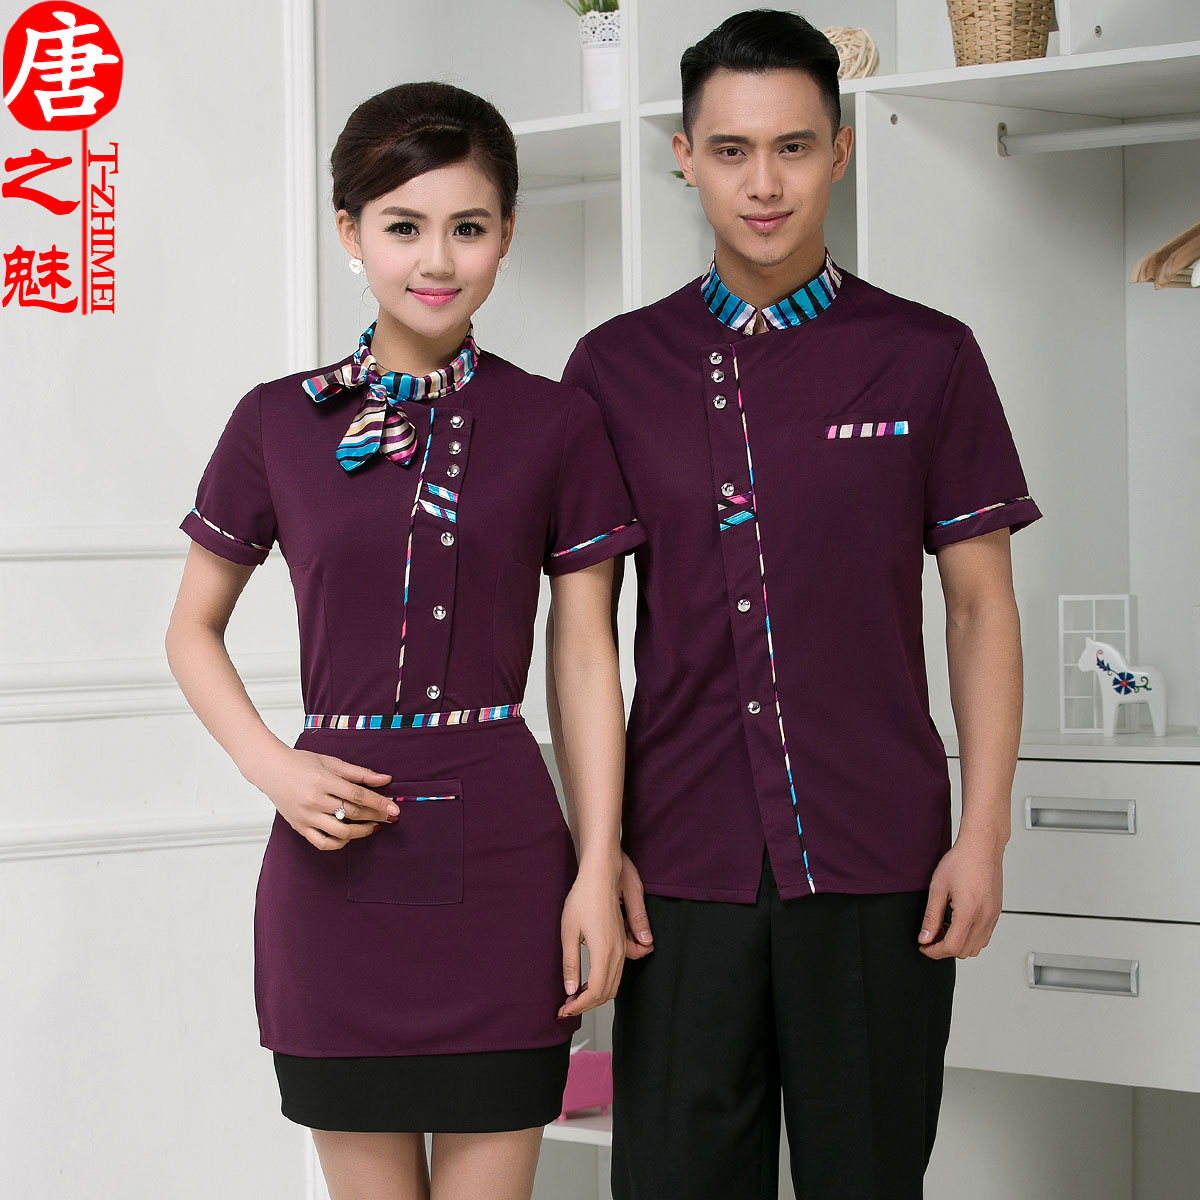 Waiter overalls summer hotel restaurant waiter overalls sleeved overalls restaurant waiter uniforms short sleeve